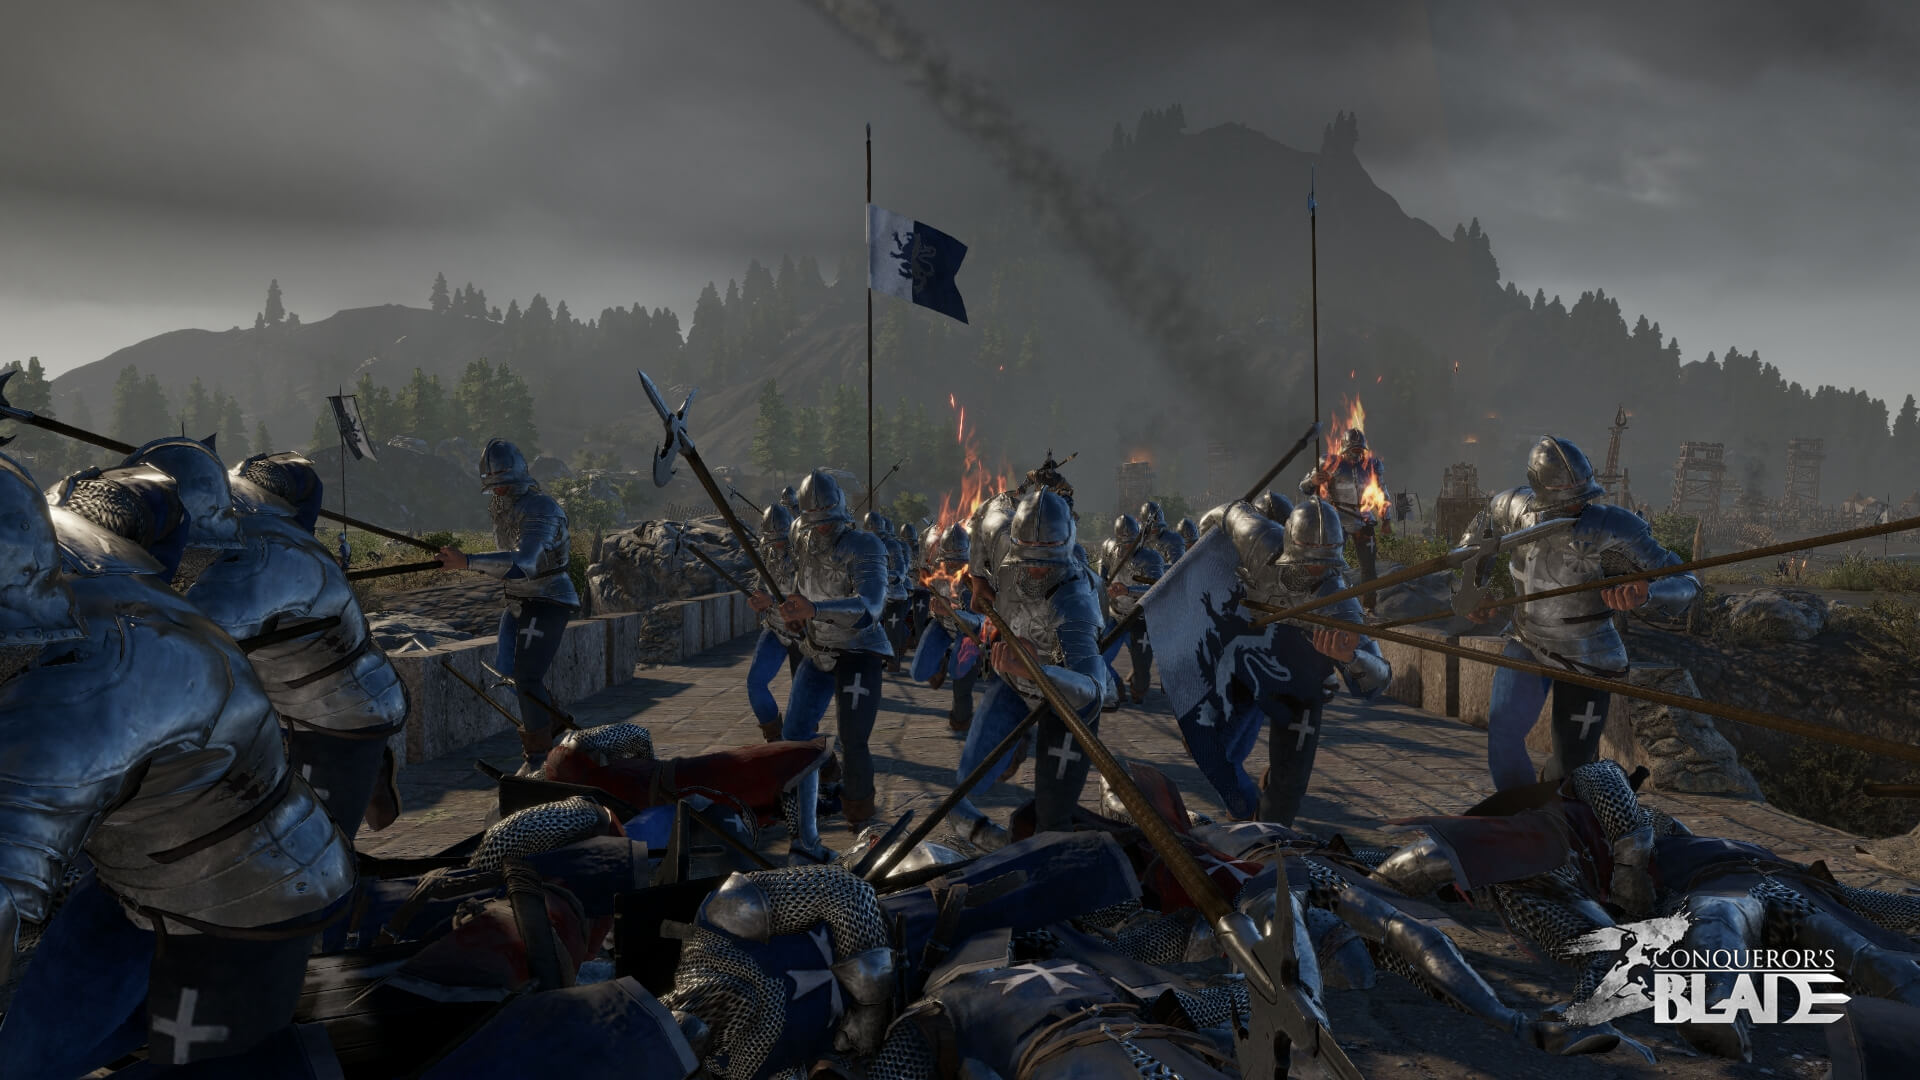 Conqueror's Blade Screenshot 8